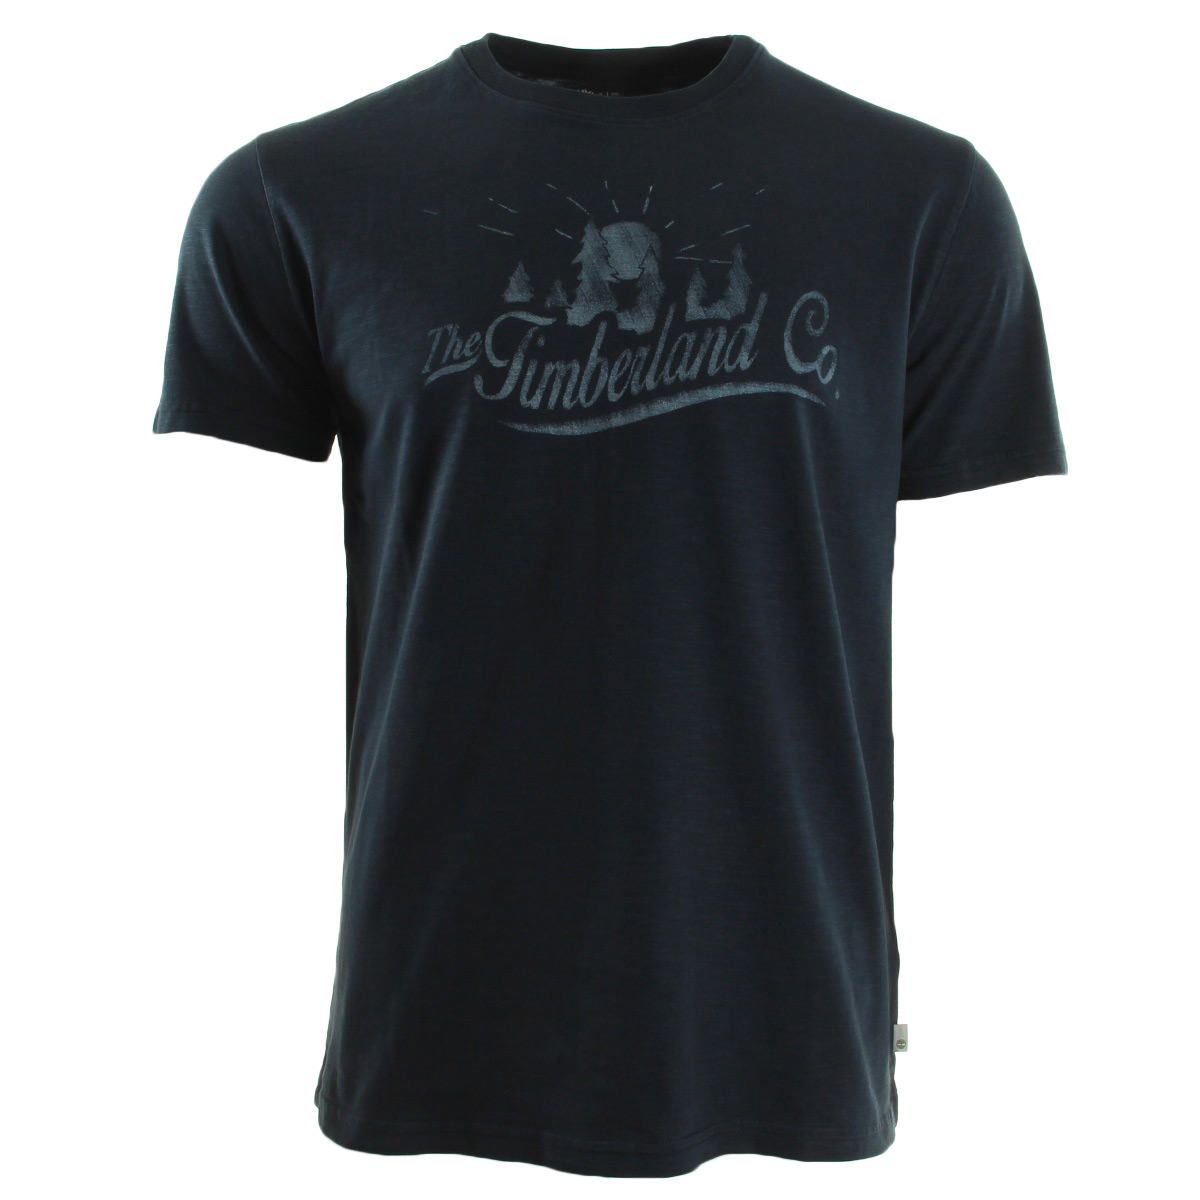 timberland tee shirt bleu marine a1686433 t shirts homme. Black Bedroom Furniture Sets. Home Design Ideas